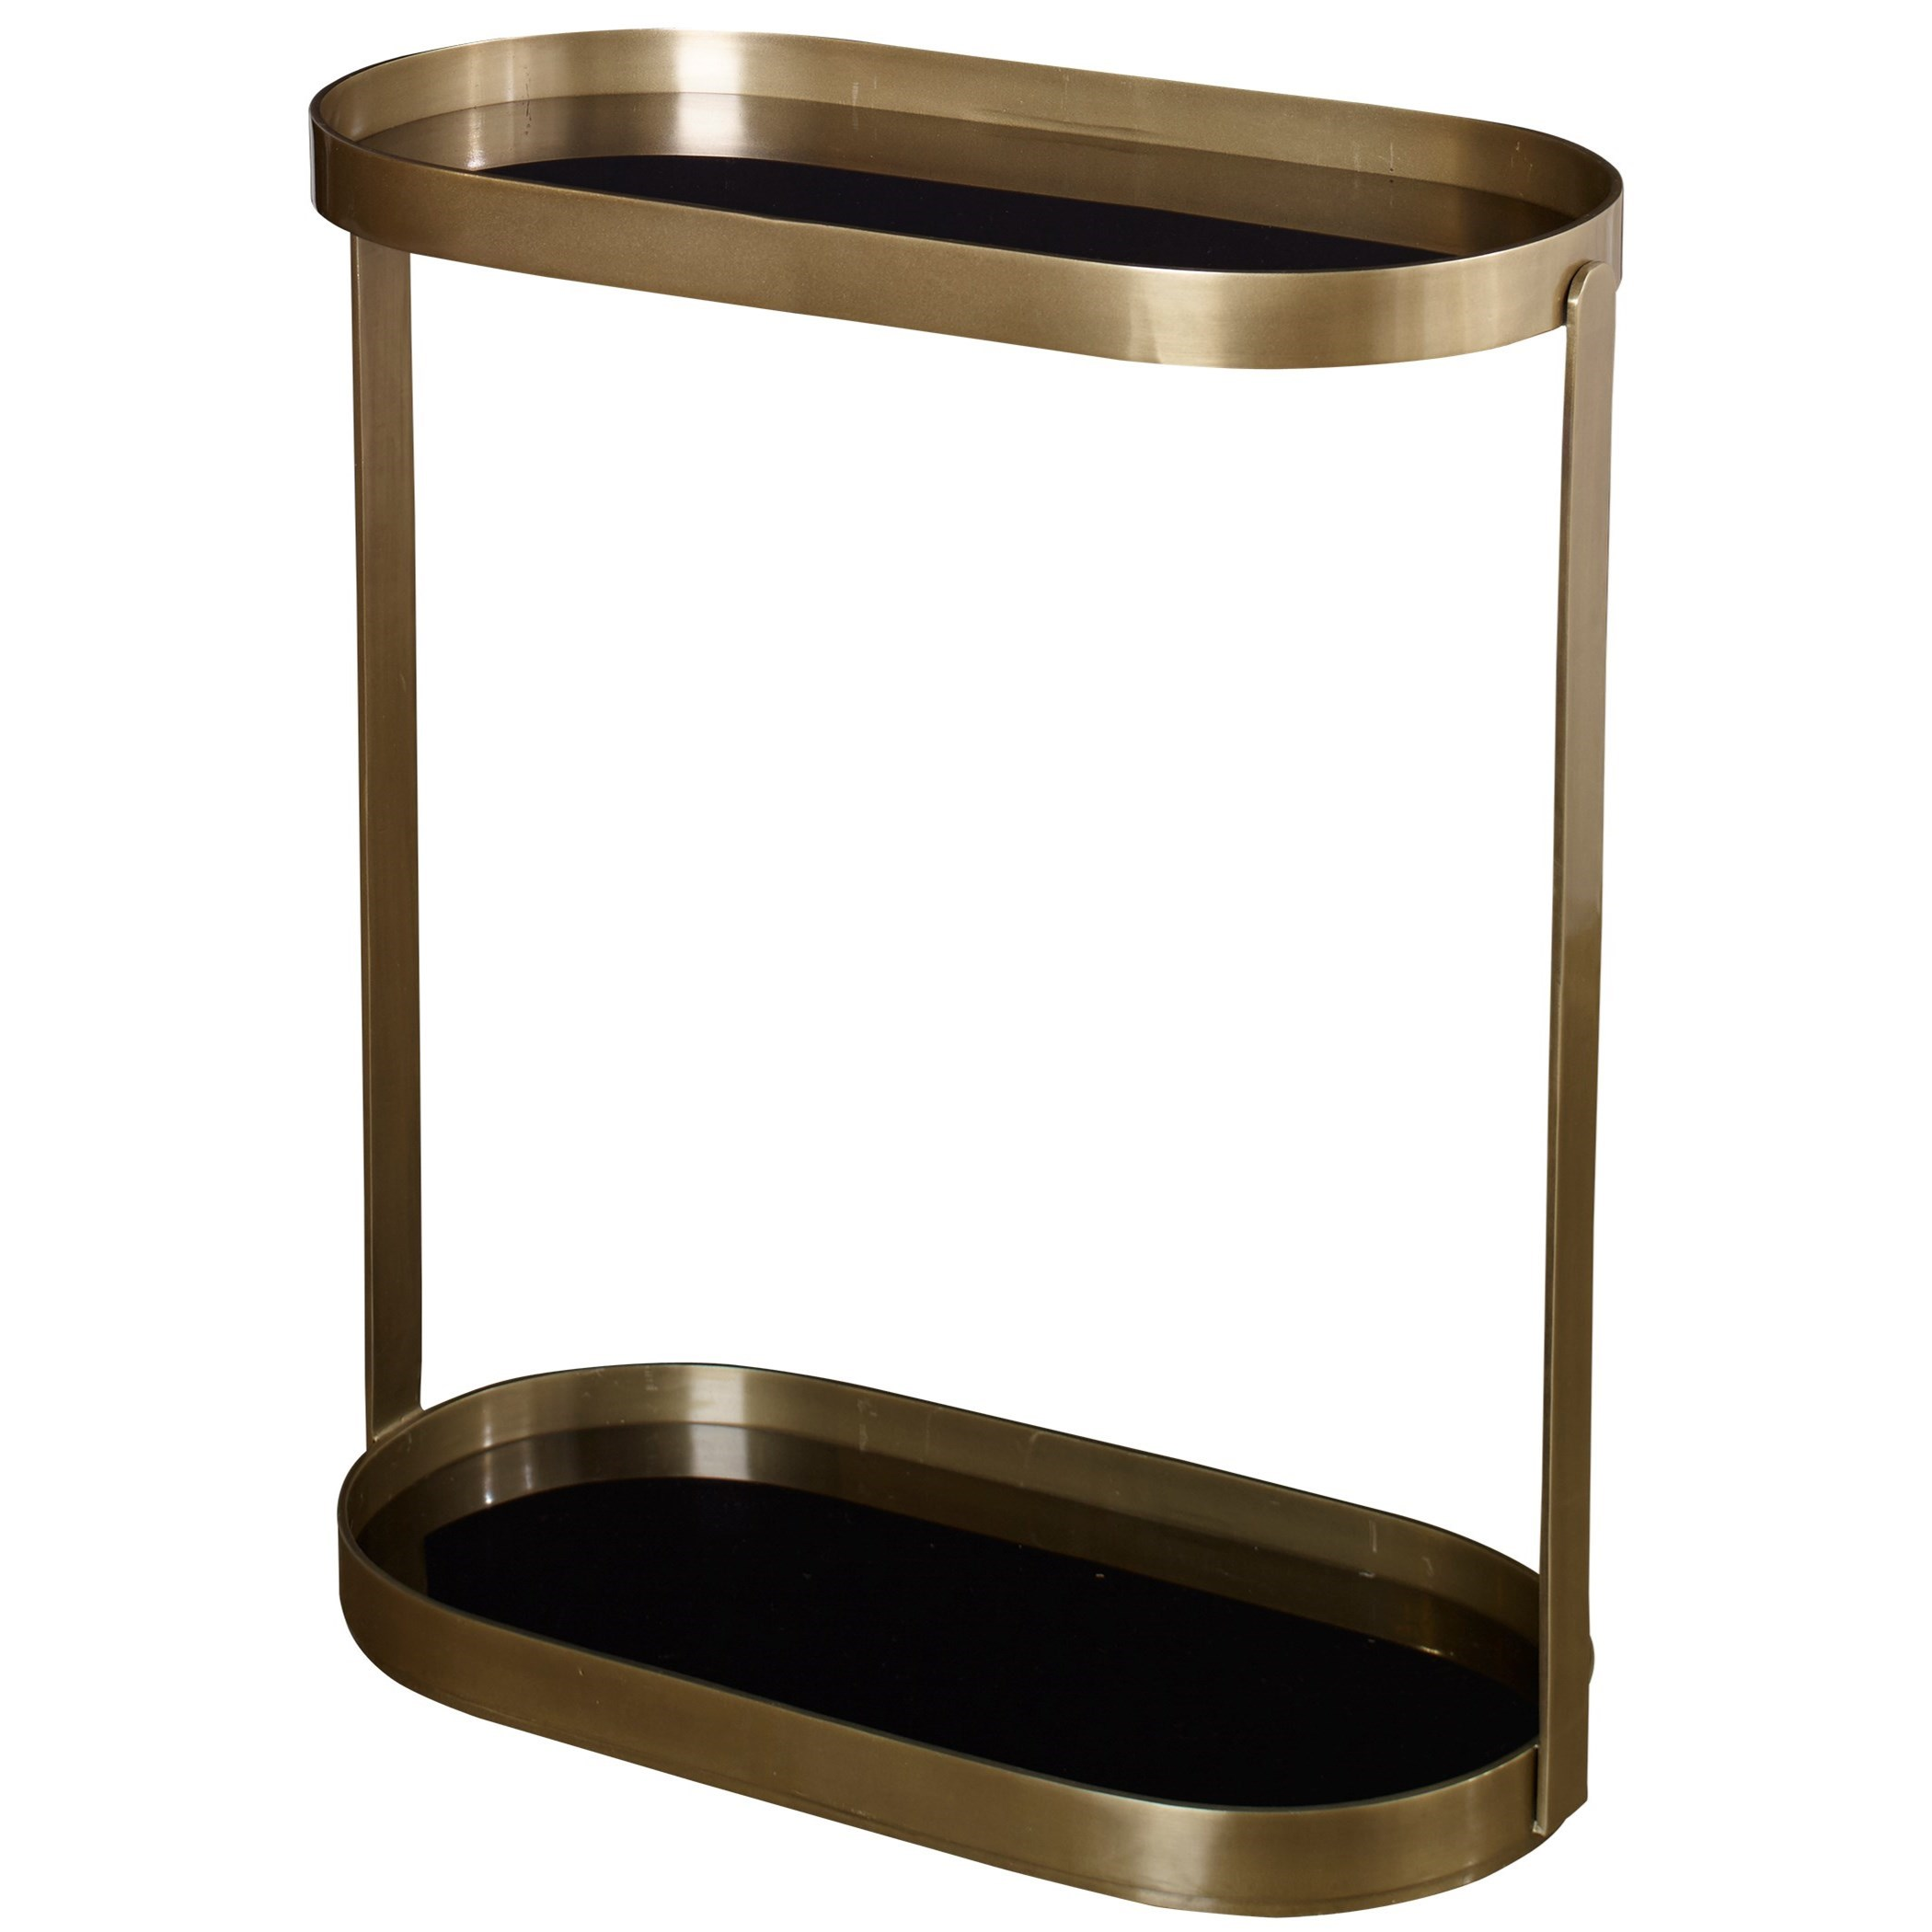 Accent Furniture - Occasional Tables Adia Antique Gold Side Table by Uttermost at Dunk & Bright Furniture